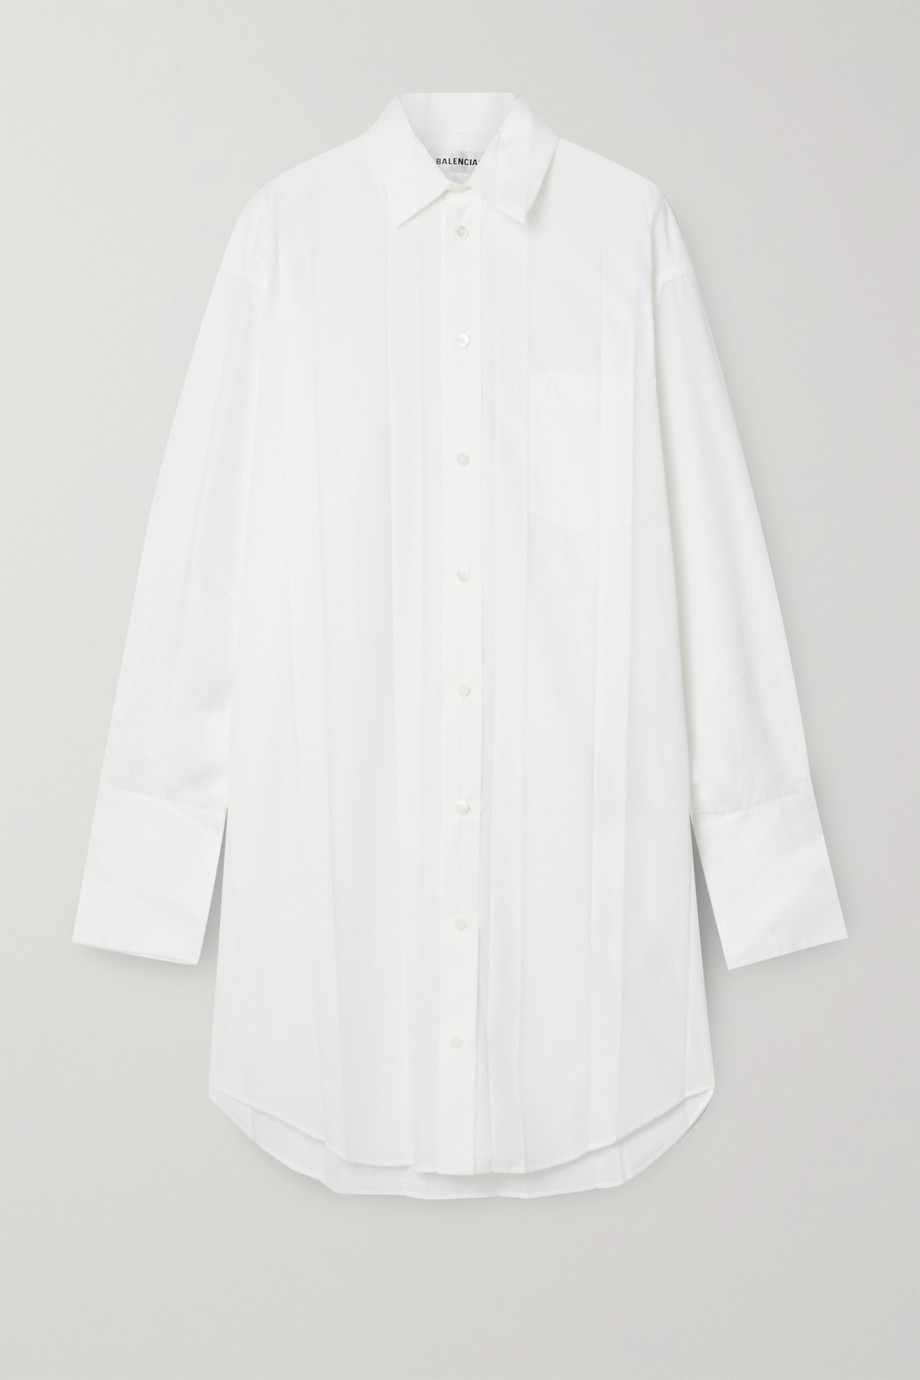 BALENCIAGA Pleated poplin shirt dress